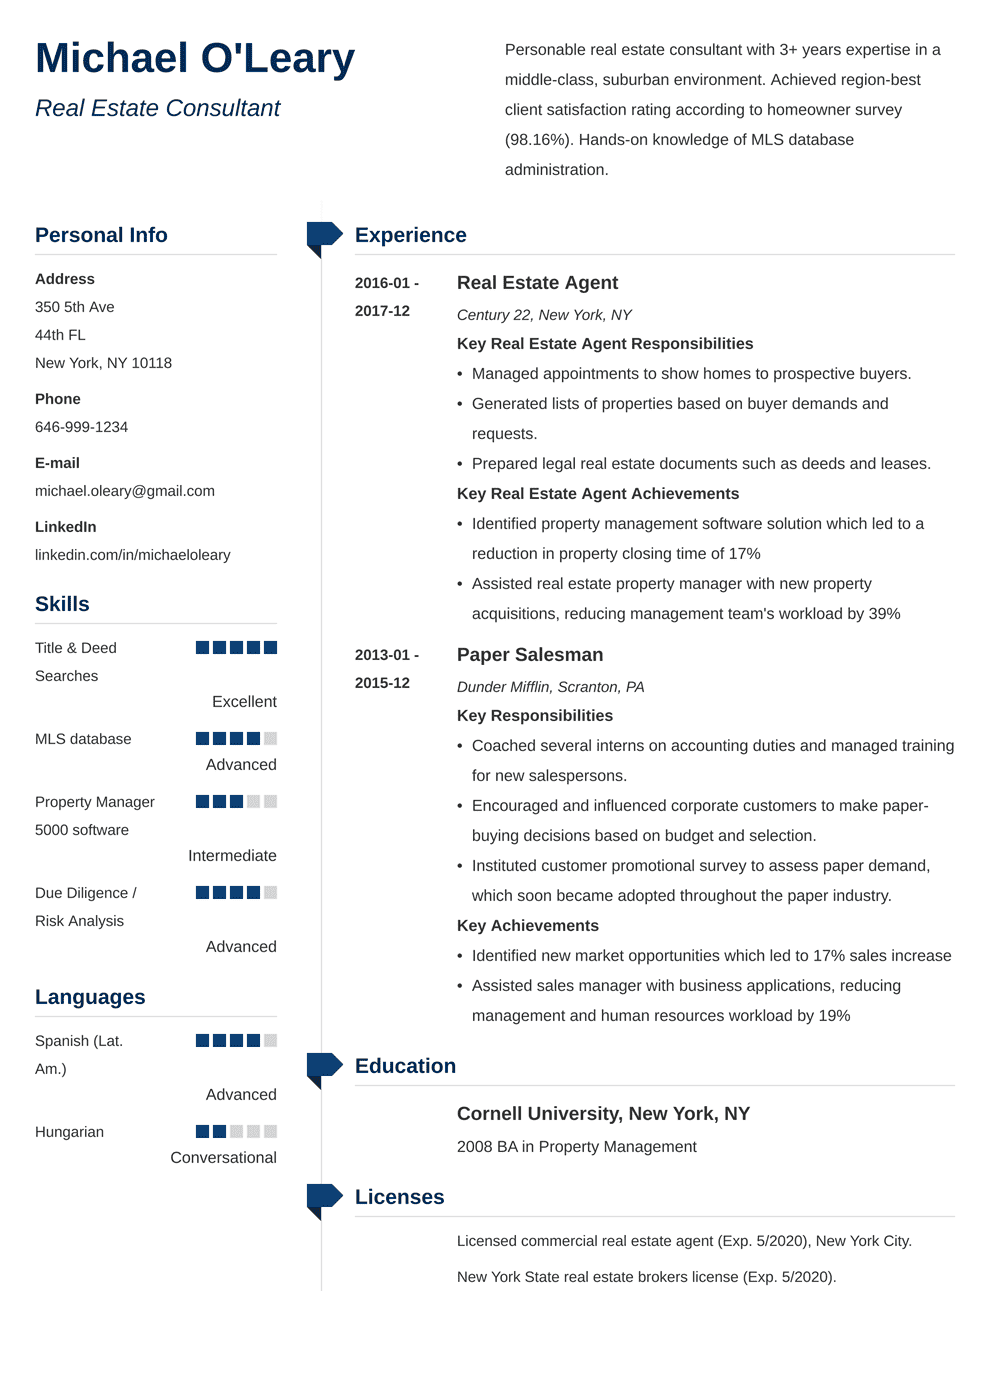 Real Estate Resume: Sample & Complete Guide [20+ Examples]